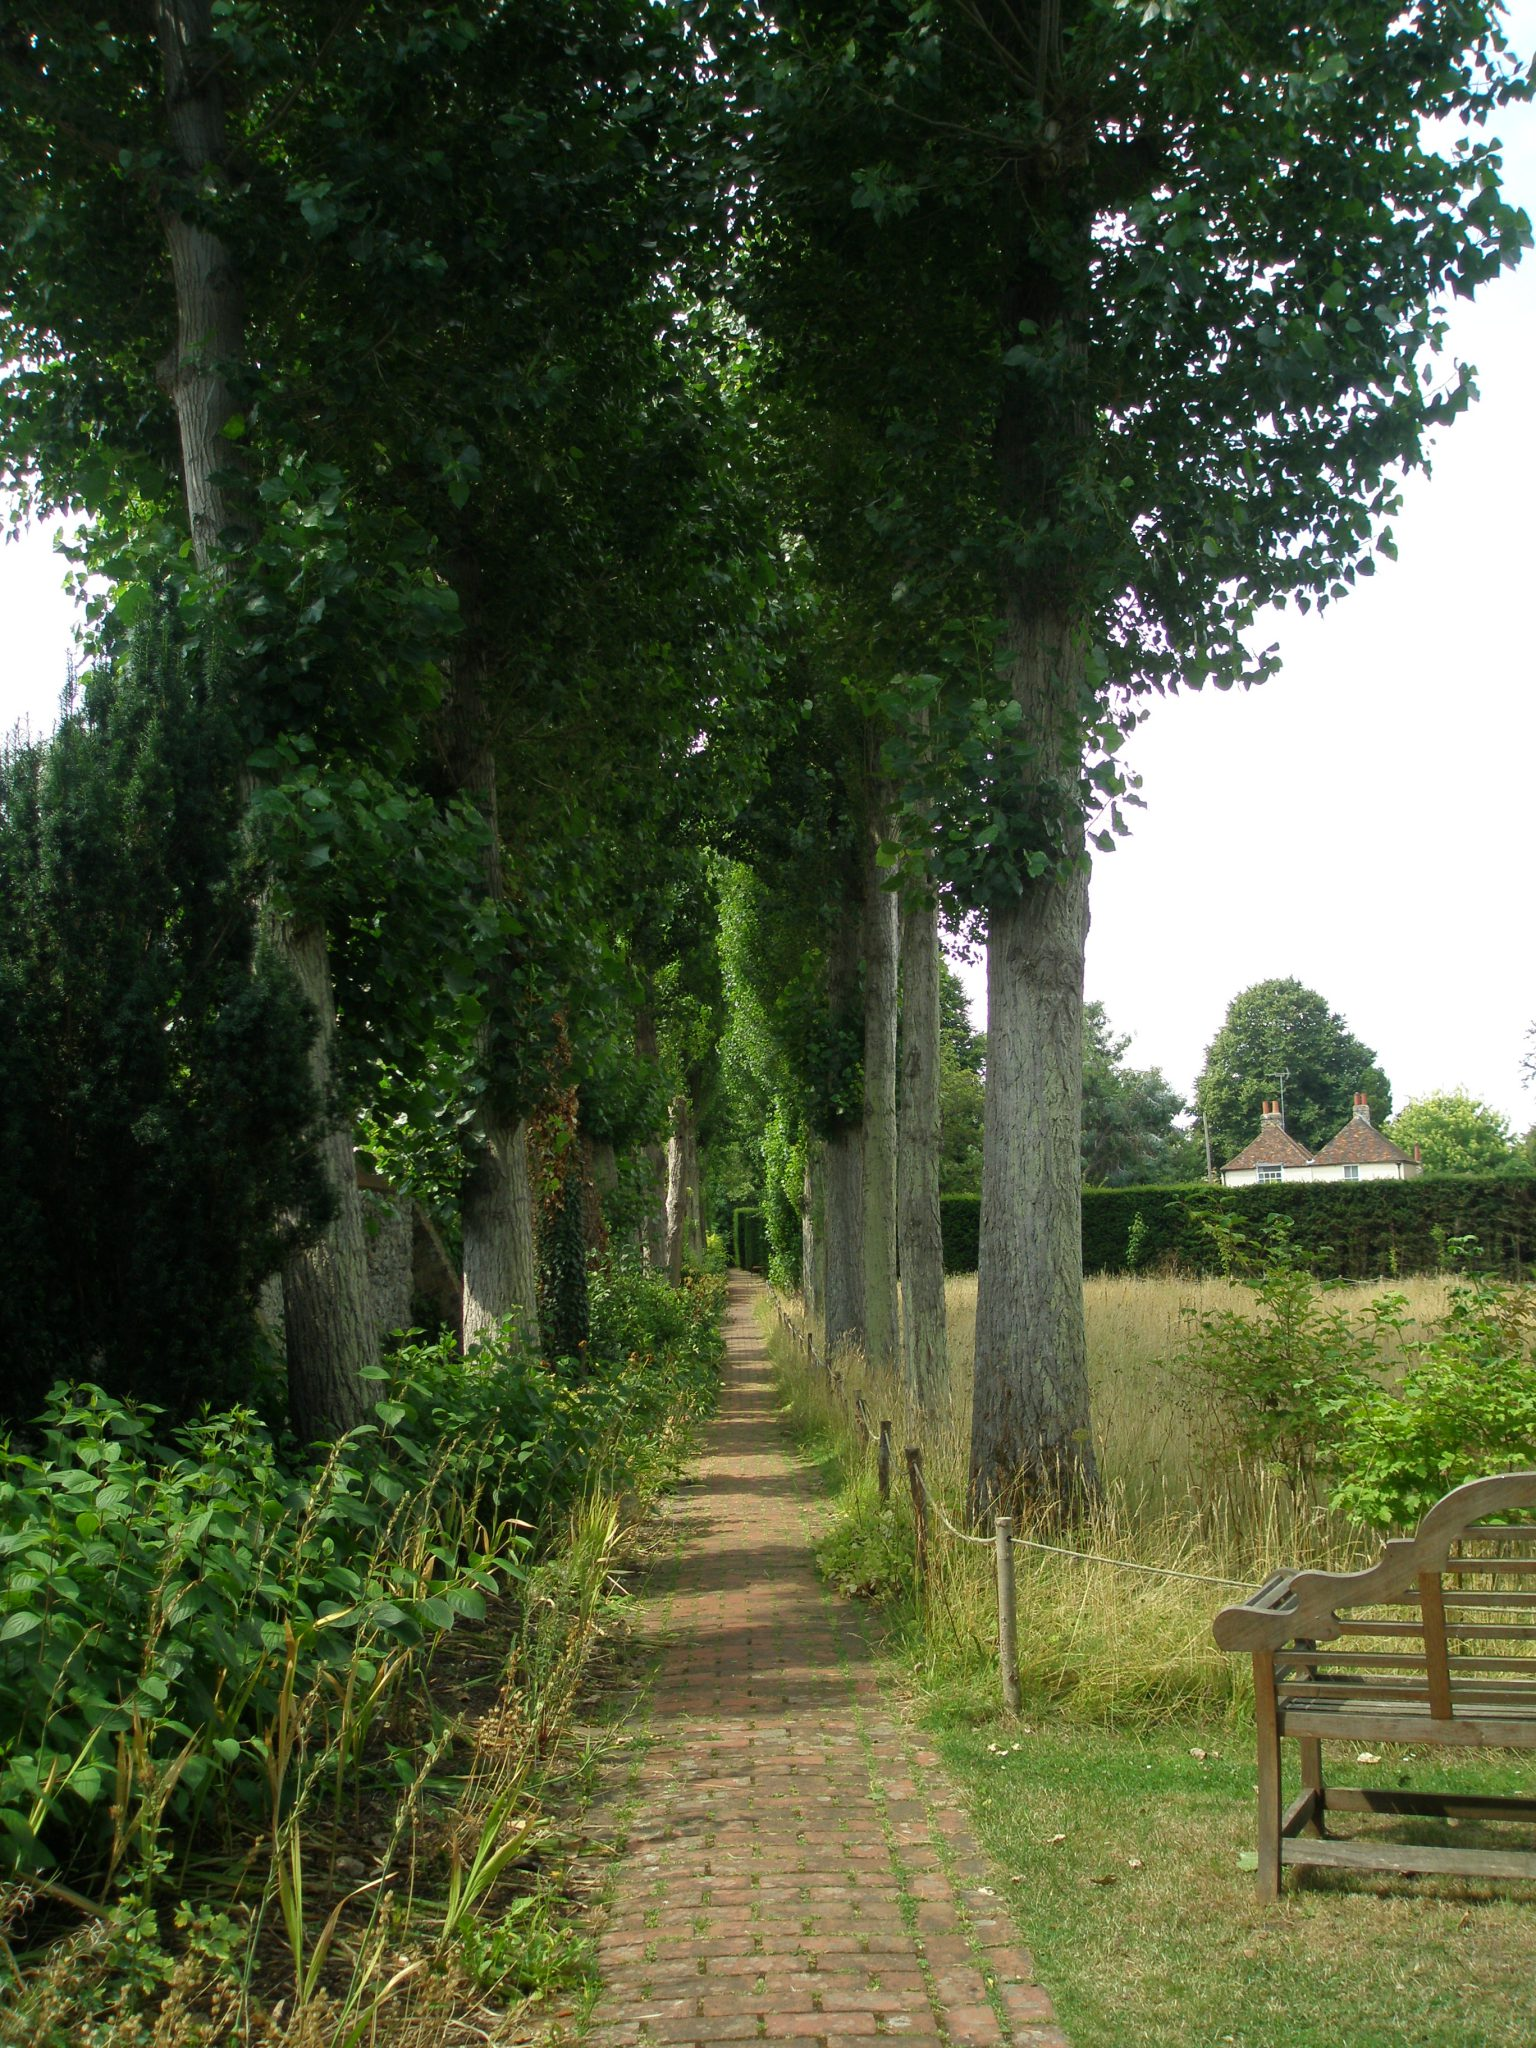 And now a TALL view of the Poplar Walk